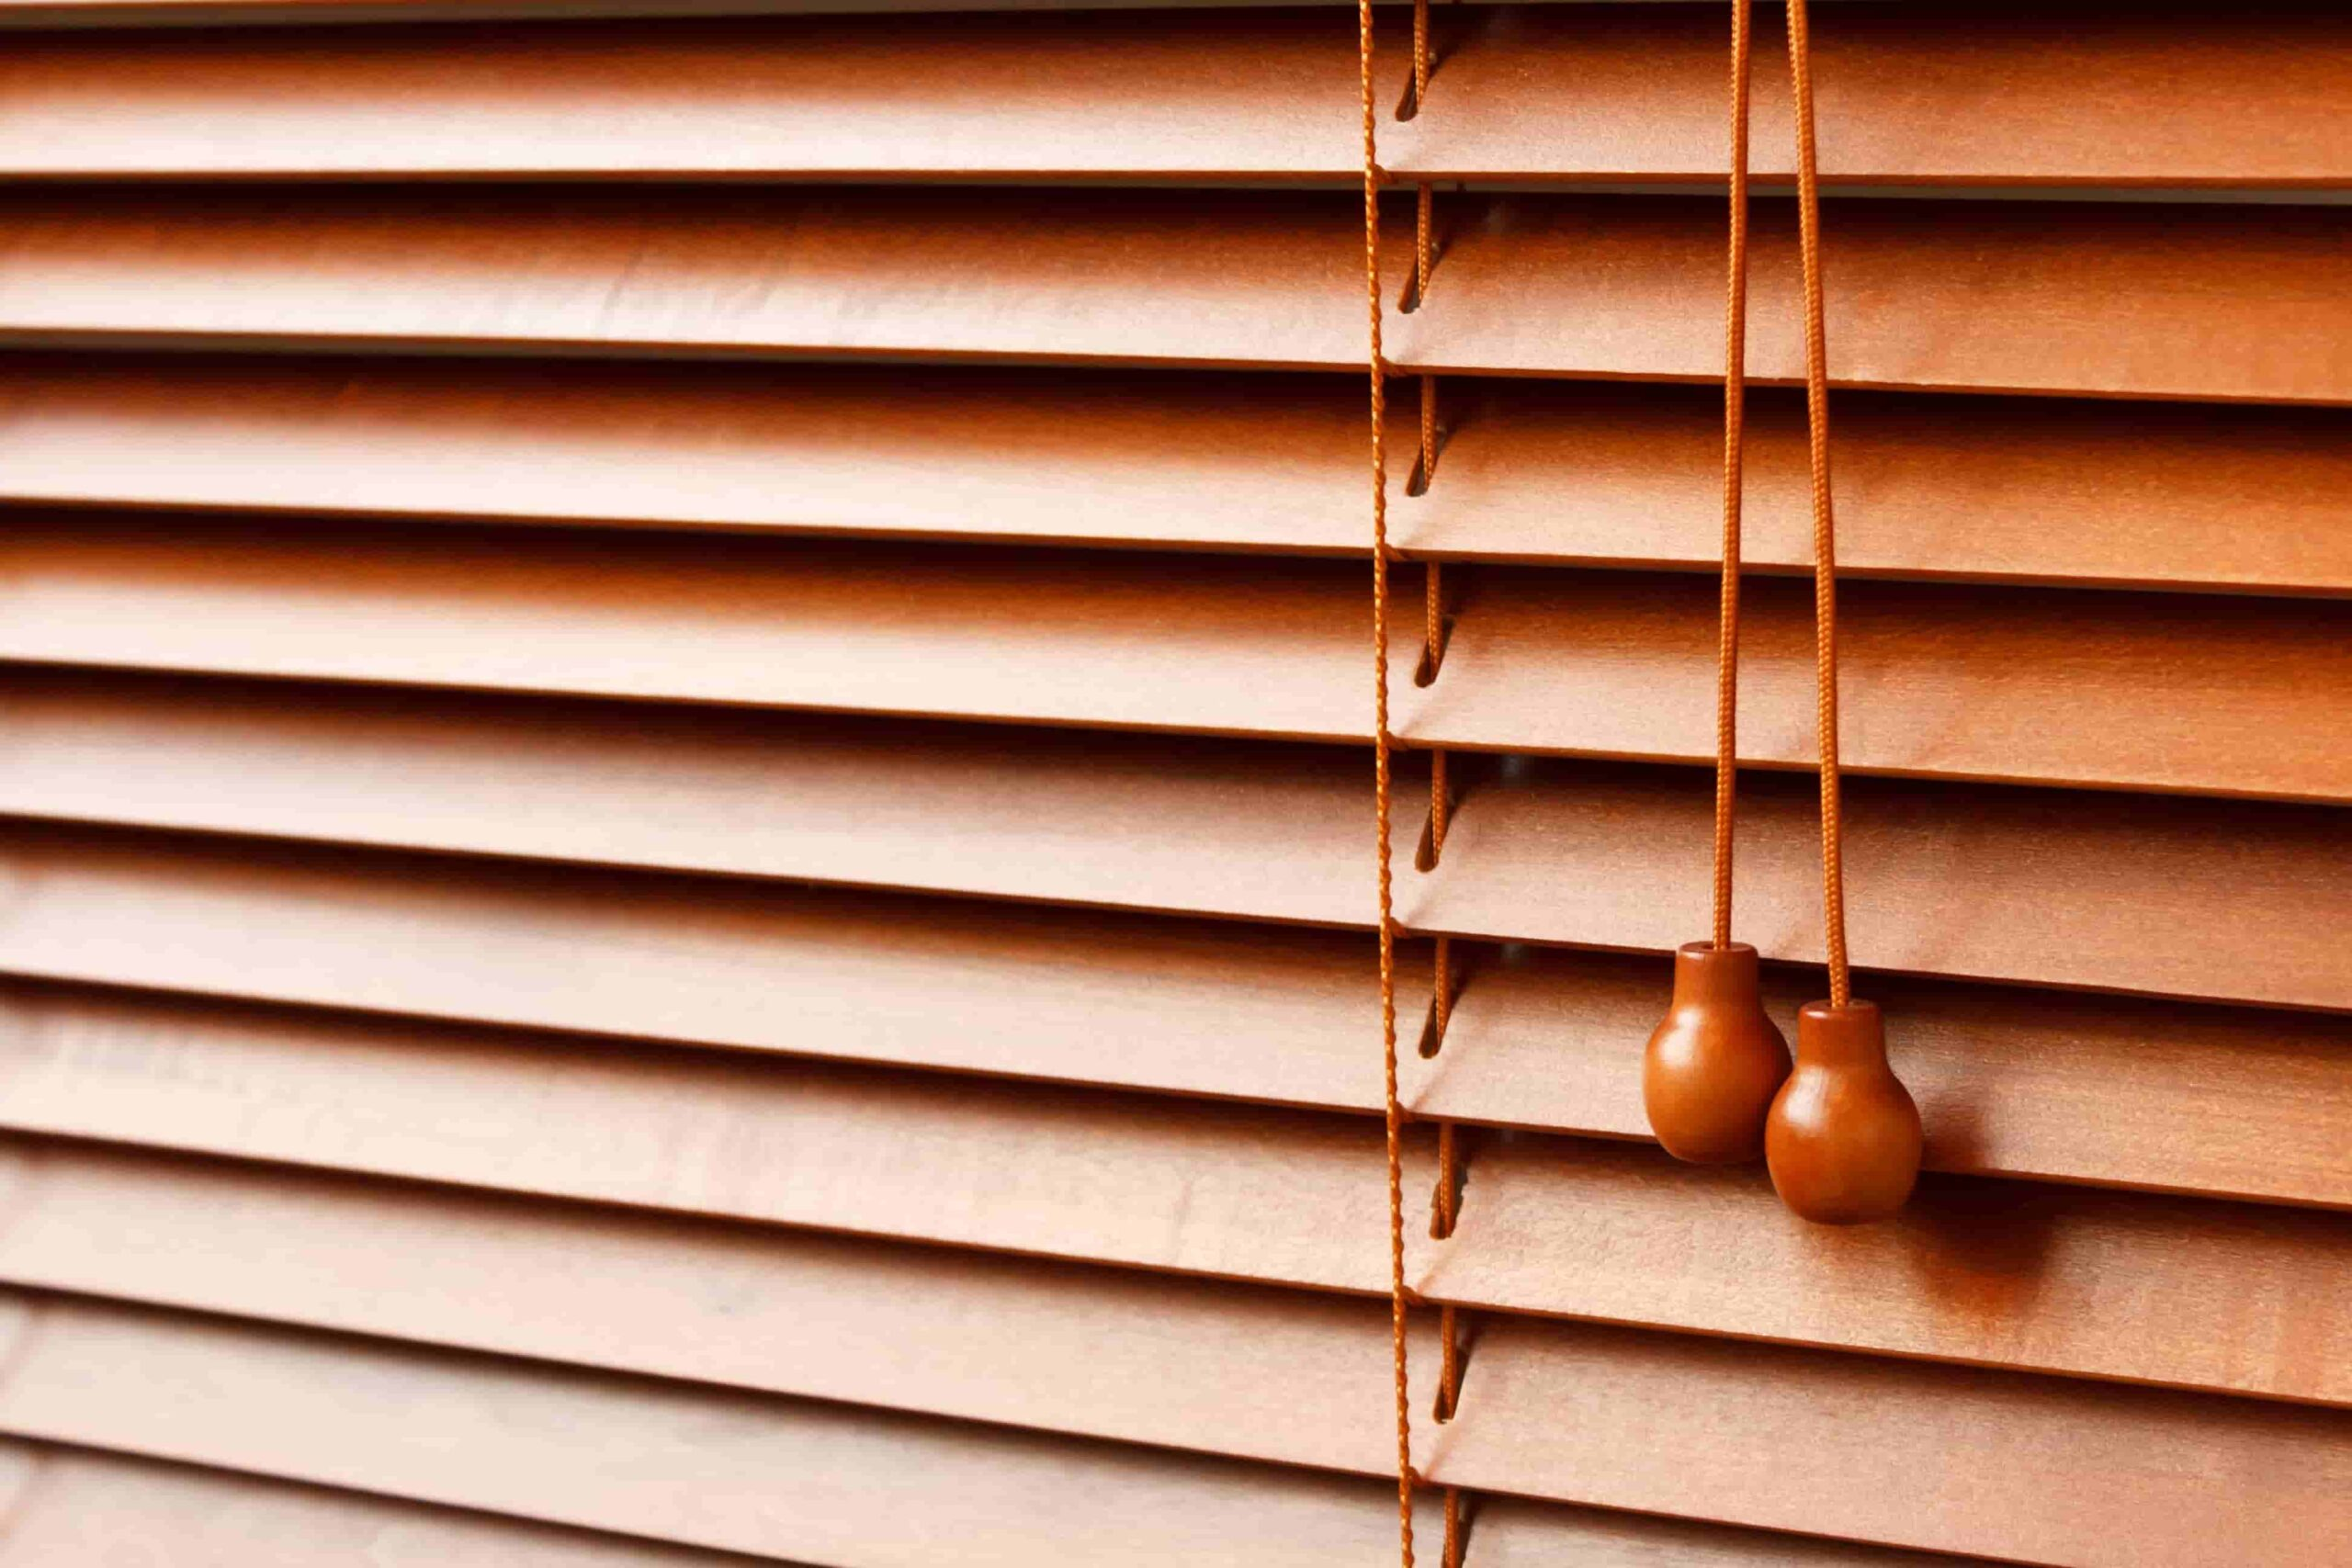 Window Cord Safety Tips